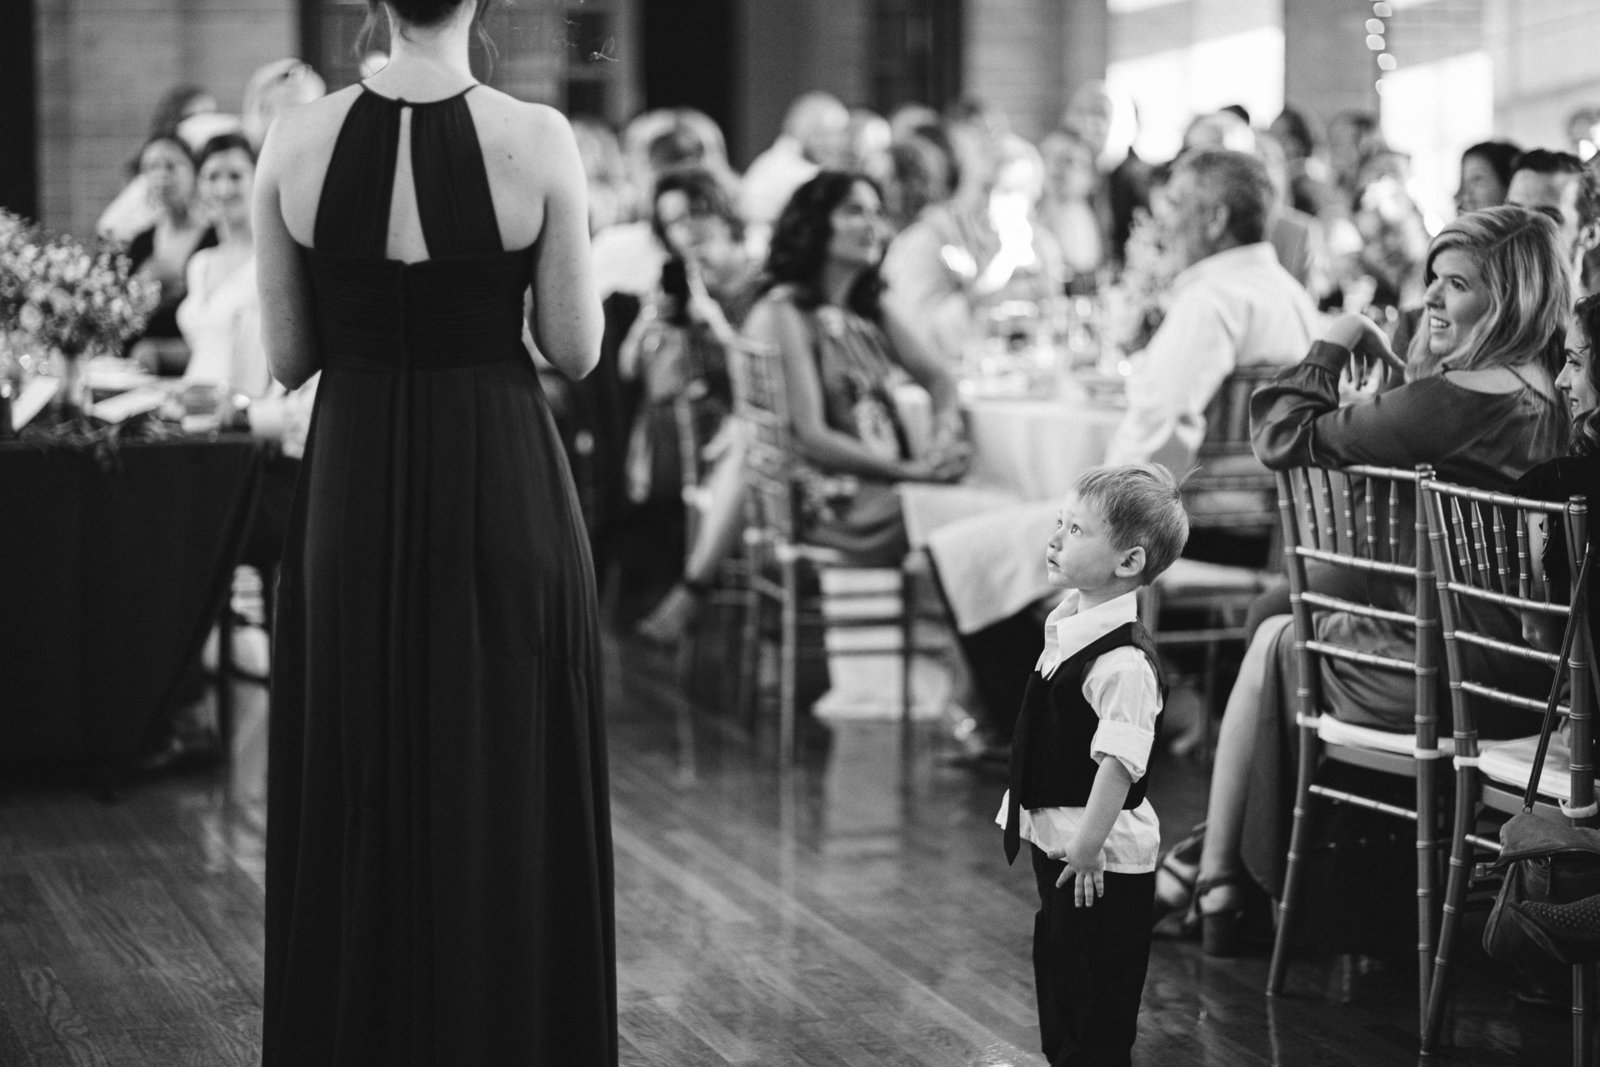 st-francis-hall-washington-dc-elegant-wedding-andrew-morrell-photography_3423